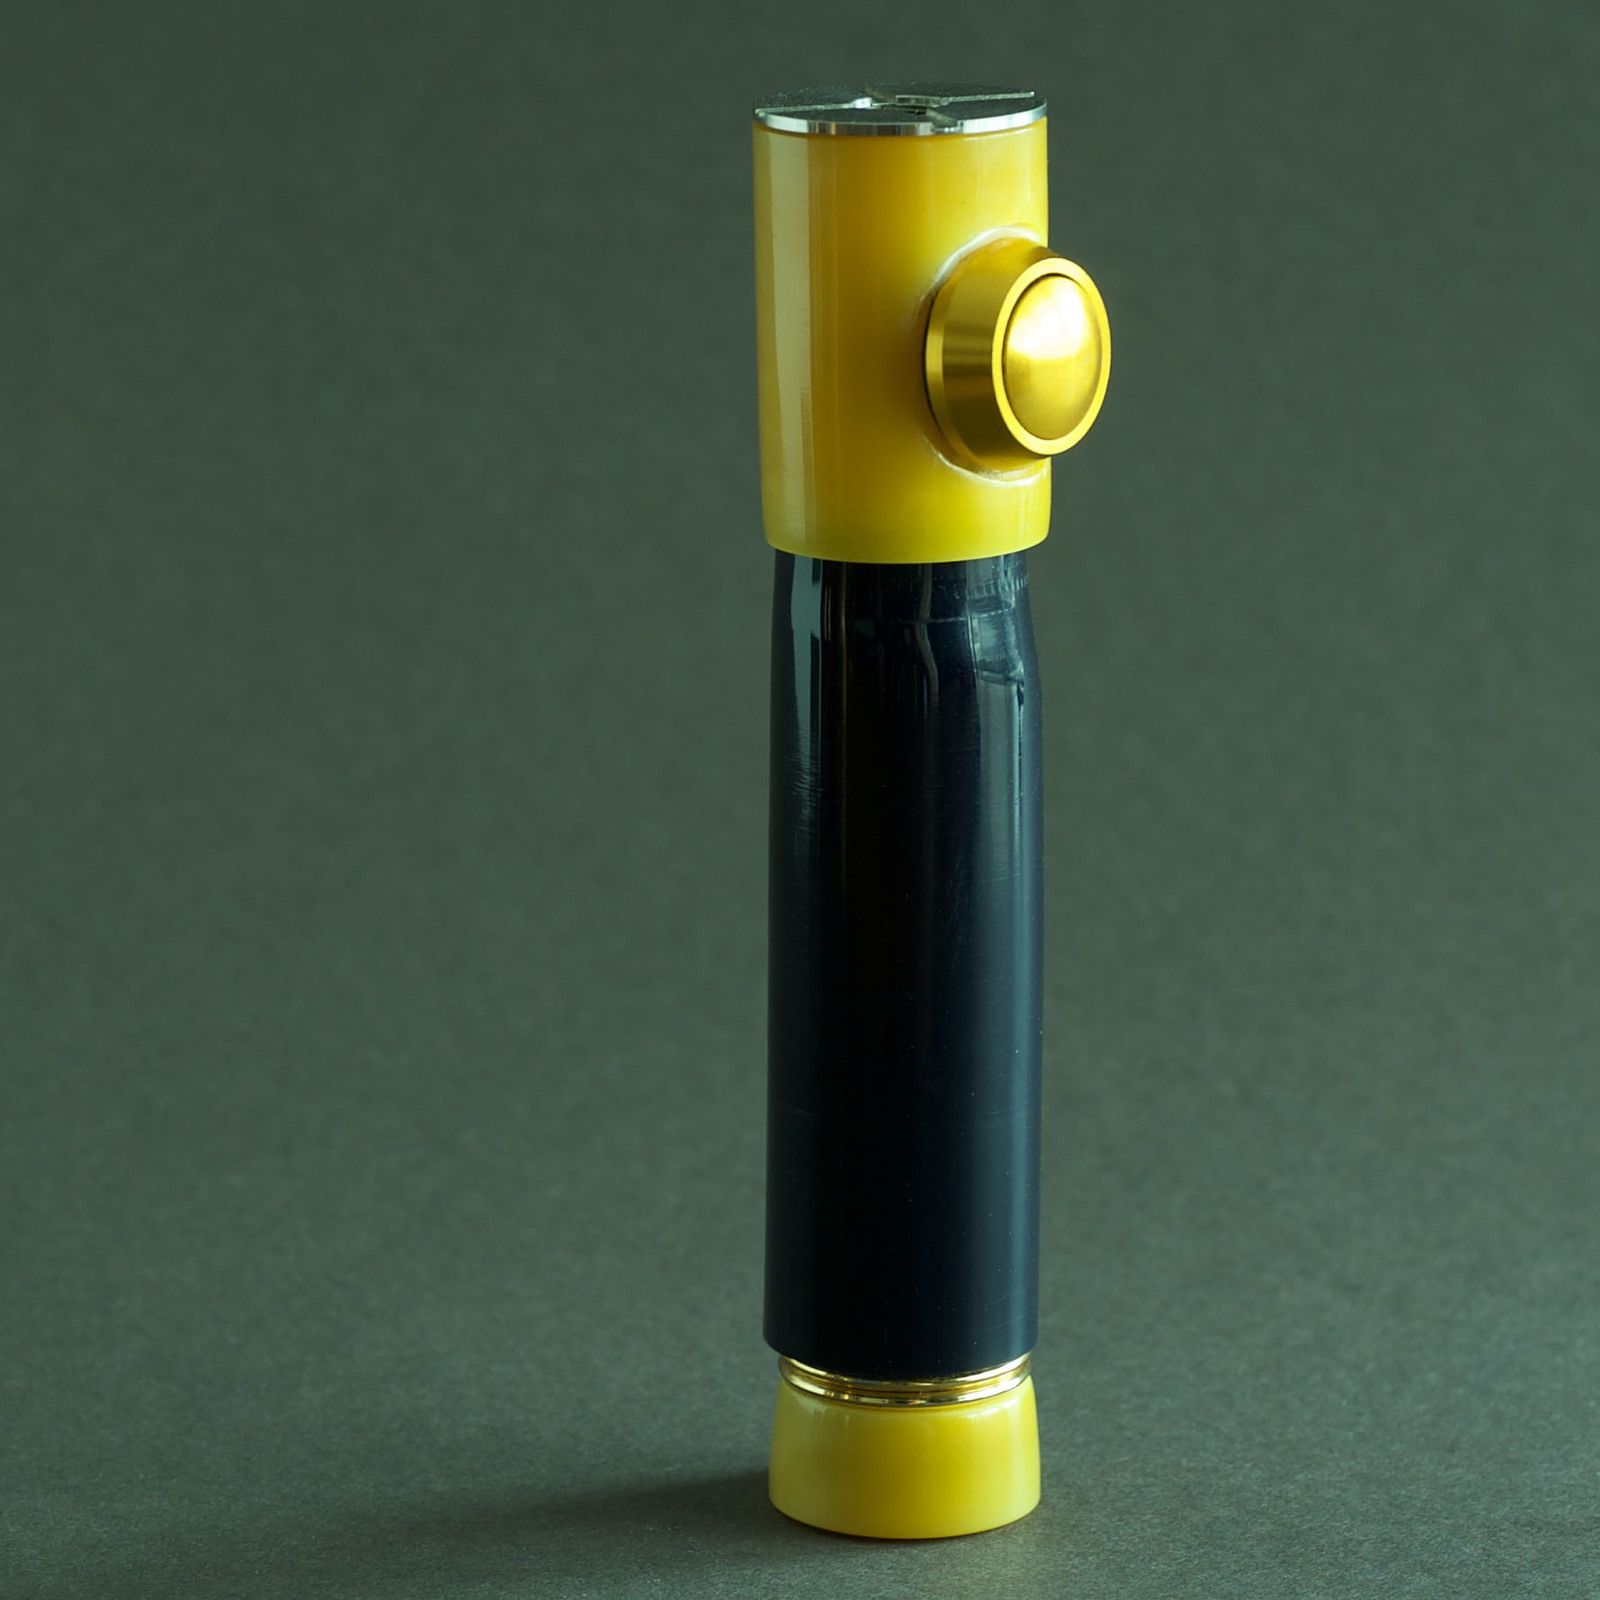 Mod périscope / Yellow submarine.